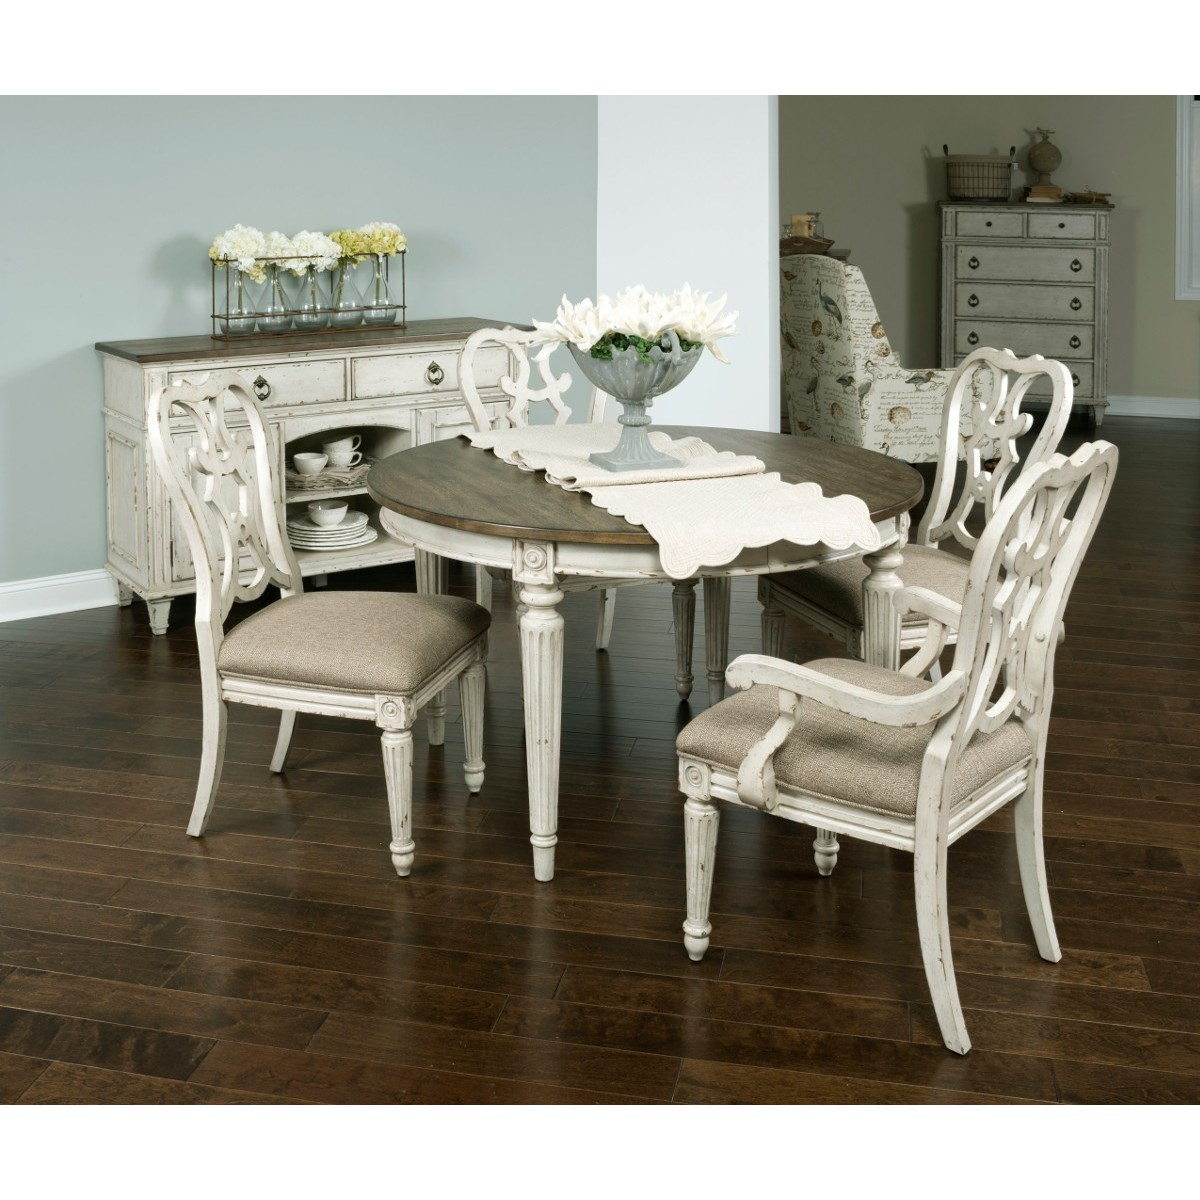 Living Room With Dining Table: Living Trends SOUTHBURY Round Dining Table With Leaves